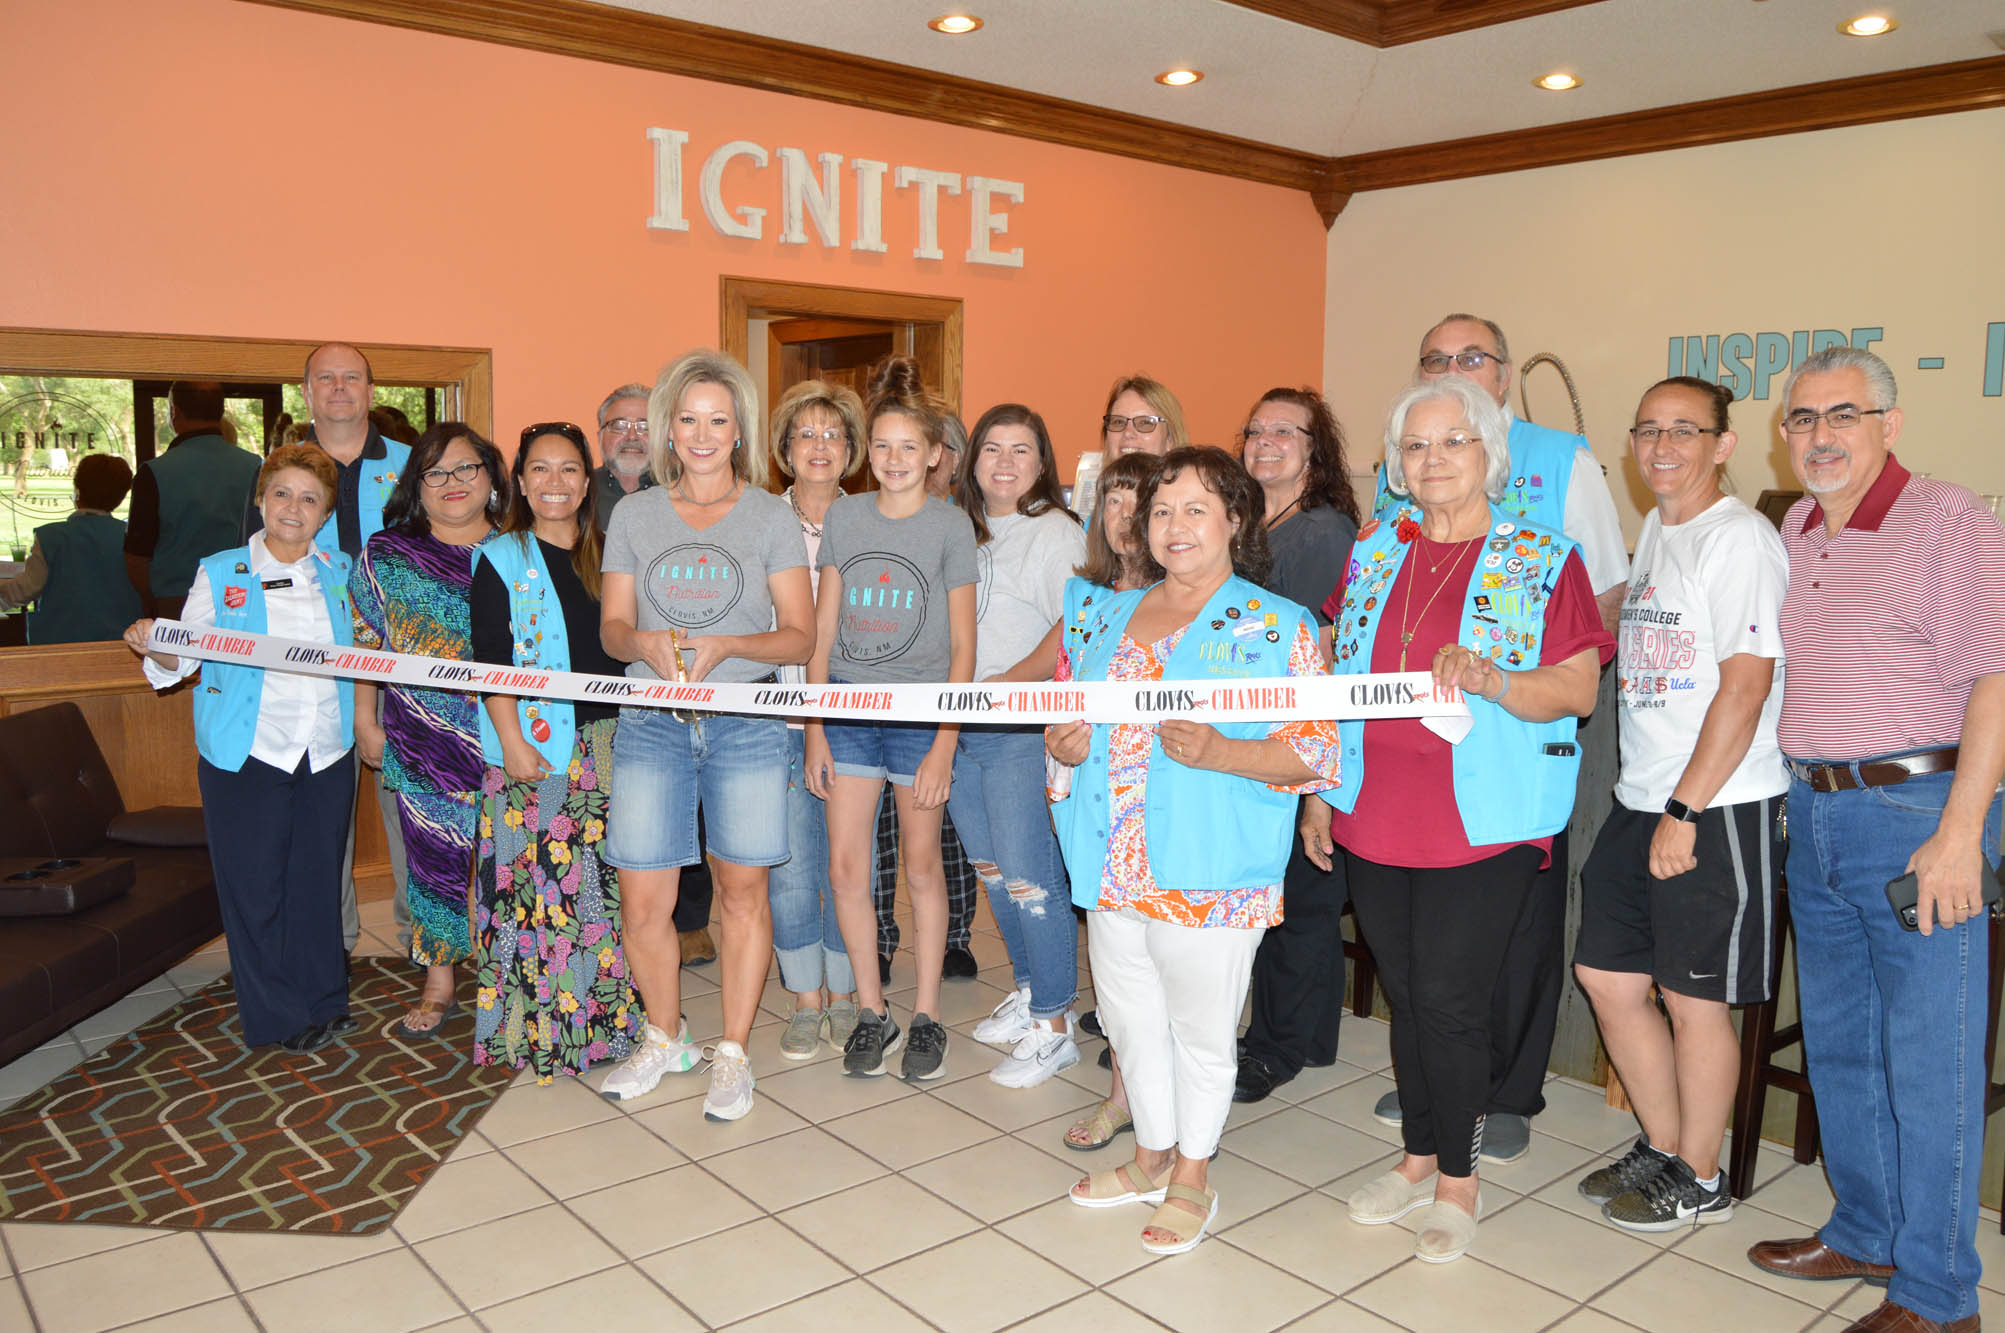 Tuesday, July 13 2021 - Ignite Nutrition, 917 A Norris